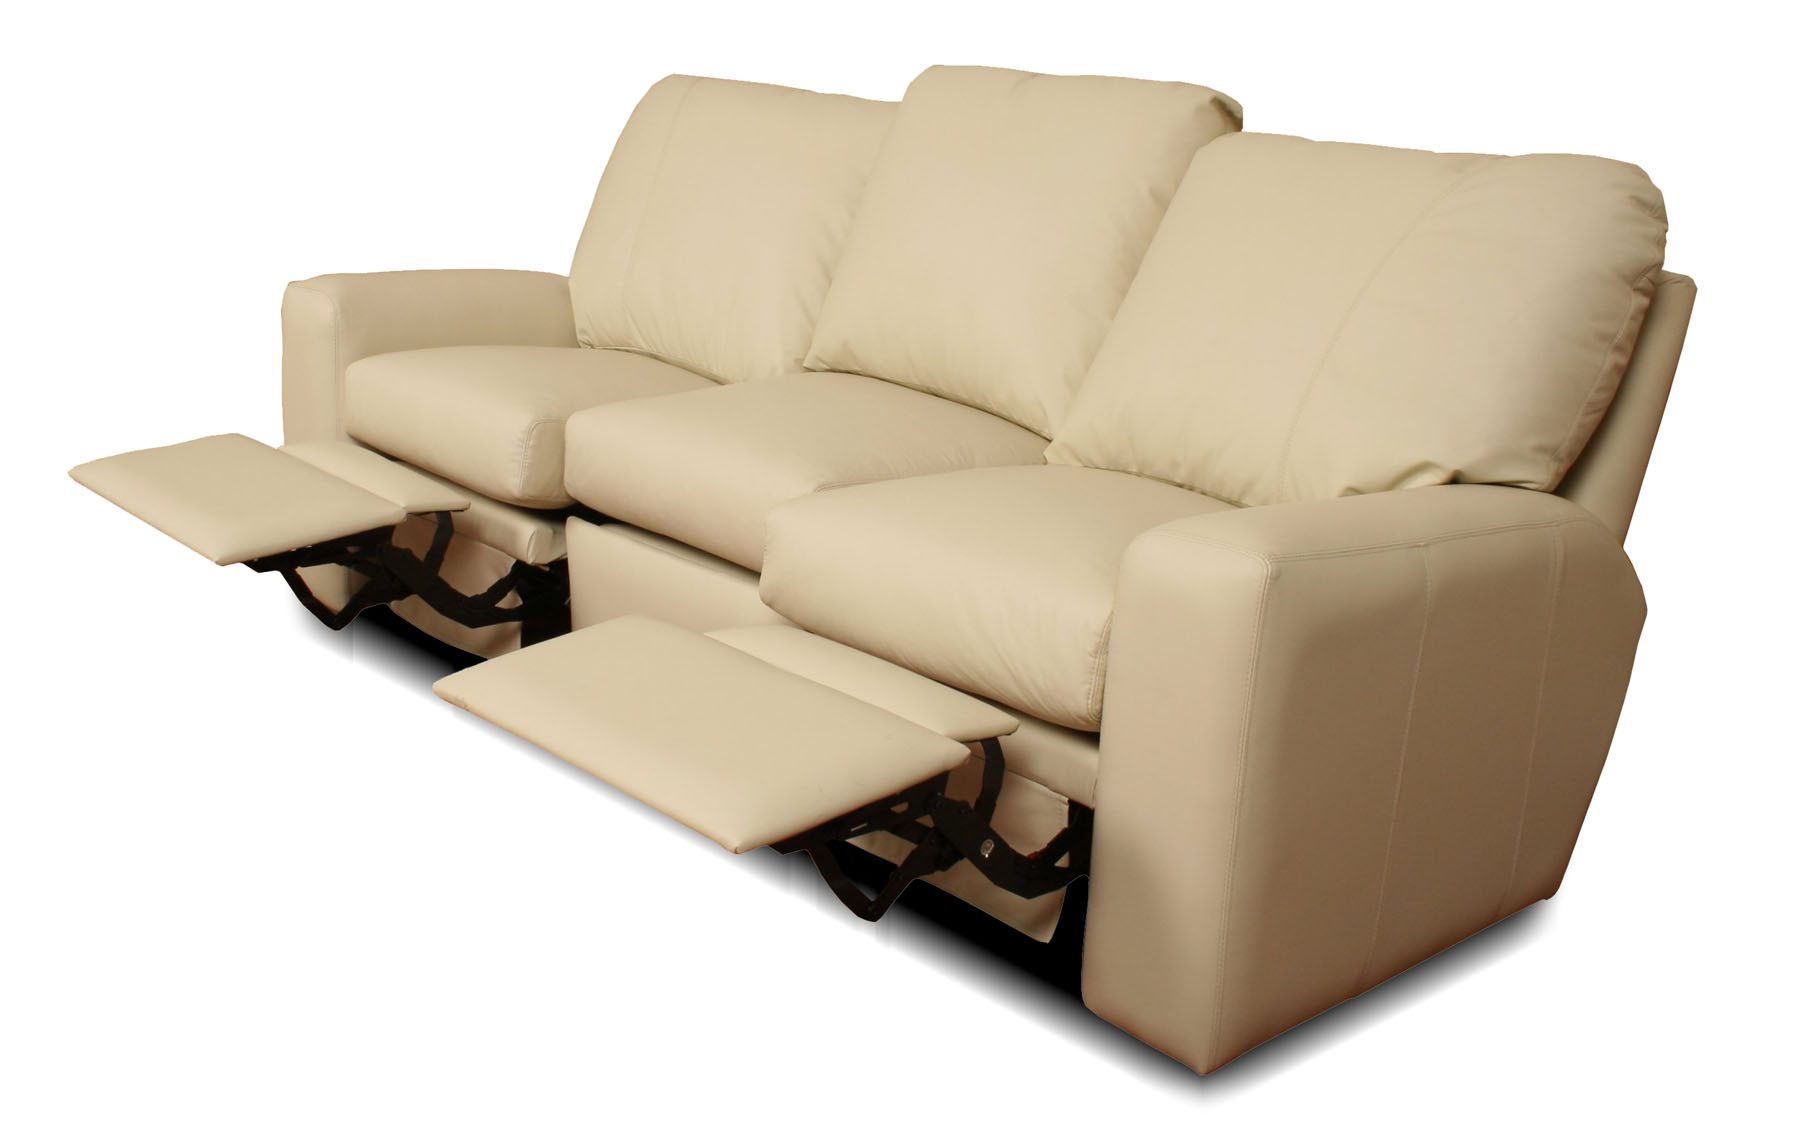 Benz – Reclining Leather Sofa • Leather Creations For Customized Sofas (View 8 of 15)